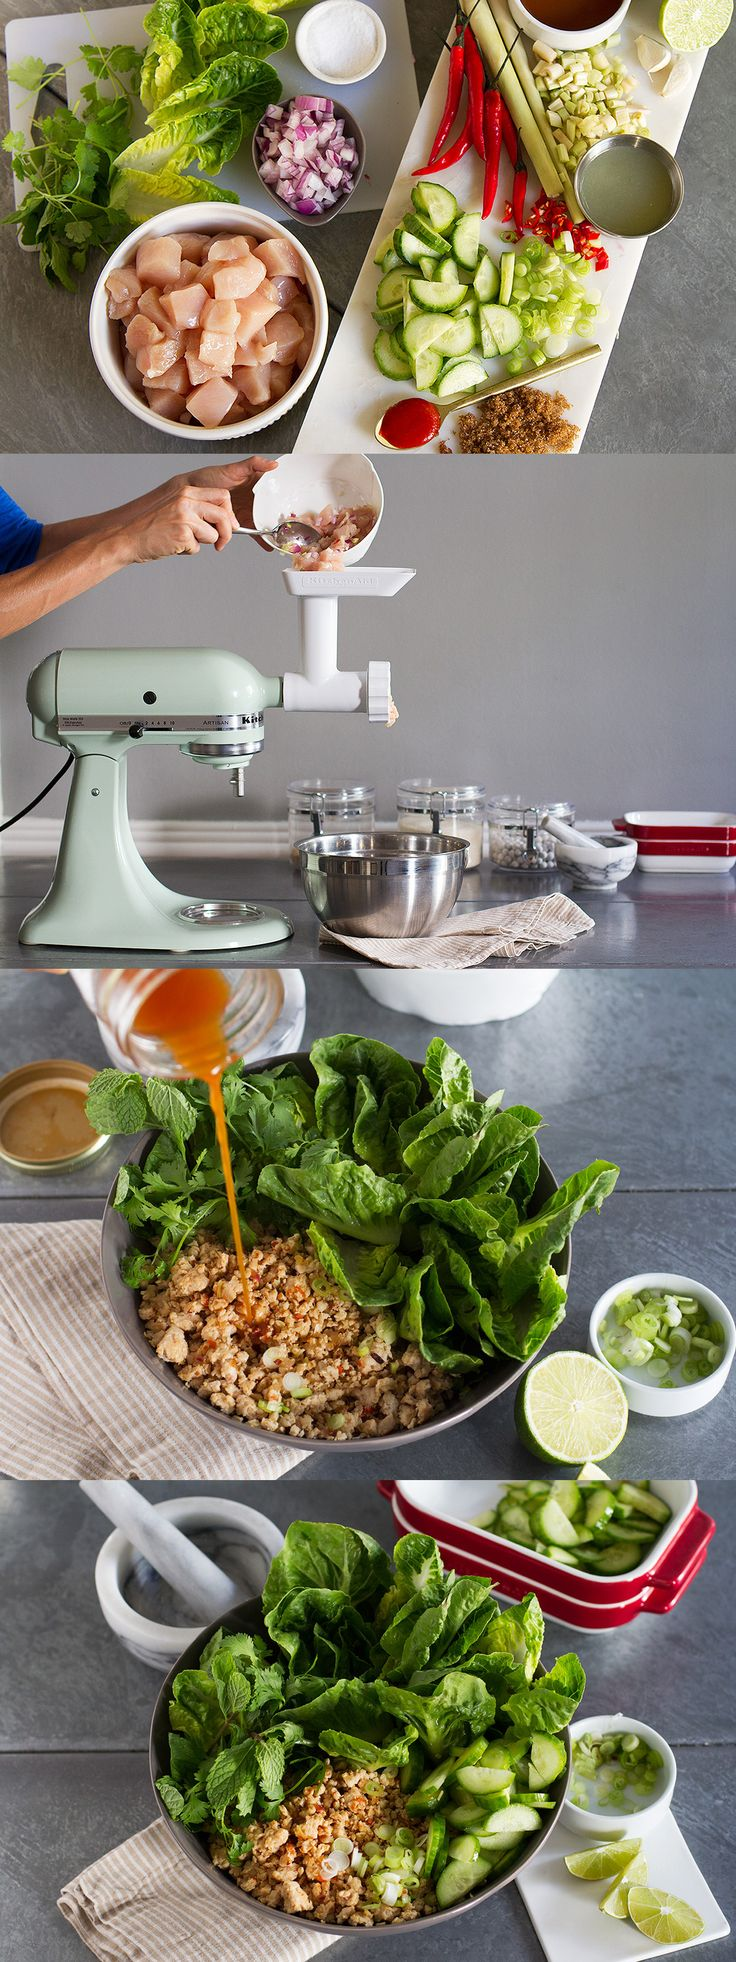 Make your own Thai chicken dish with the KitchenAid® Stand Mixer and Food Grinder Attachment. Get the recipe for Lemongrass Chicken and Herb Wraps from our global cuisine series on our blog.  Recipe by @aidamollenkamp.